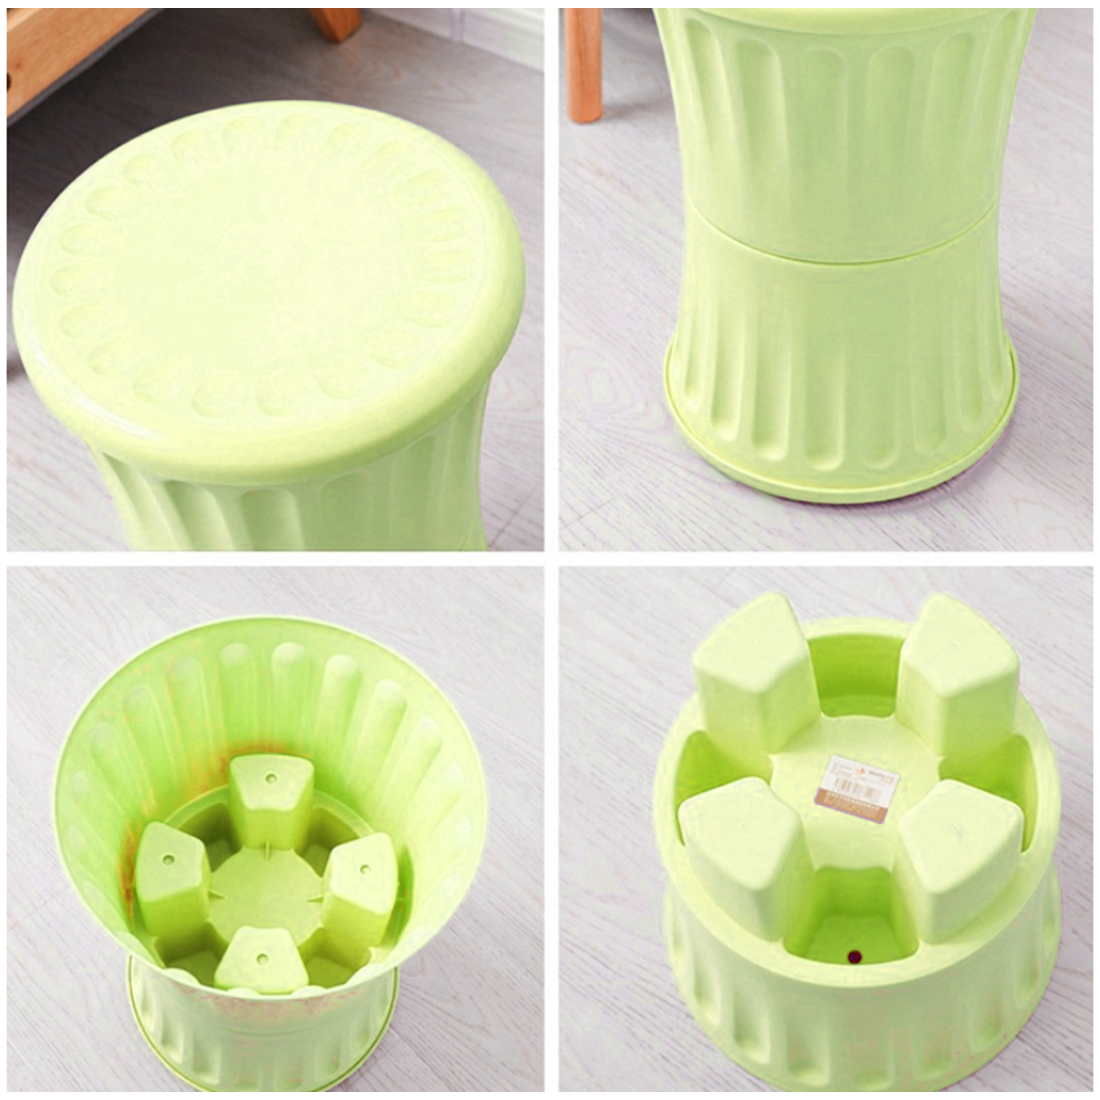 Online Shop HIPSTEEN 2Pcs Durable Multifunctional Plastic Storage Stool Simple Style Household Toy Storage Box - Green | Aliexpress Mobile  sc 1 st  AliExpress.com & Online Shop HIPSTEEN 2Pcs Durable Multifunctional Plastic Storage ... islam-shia.org